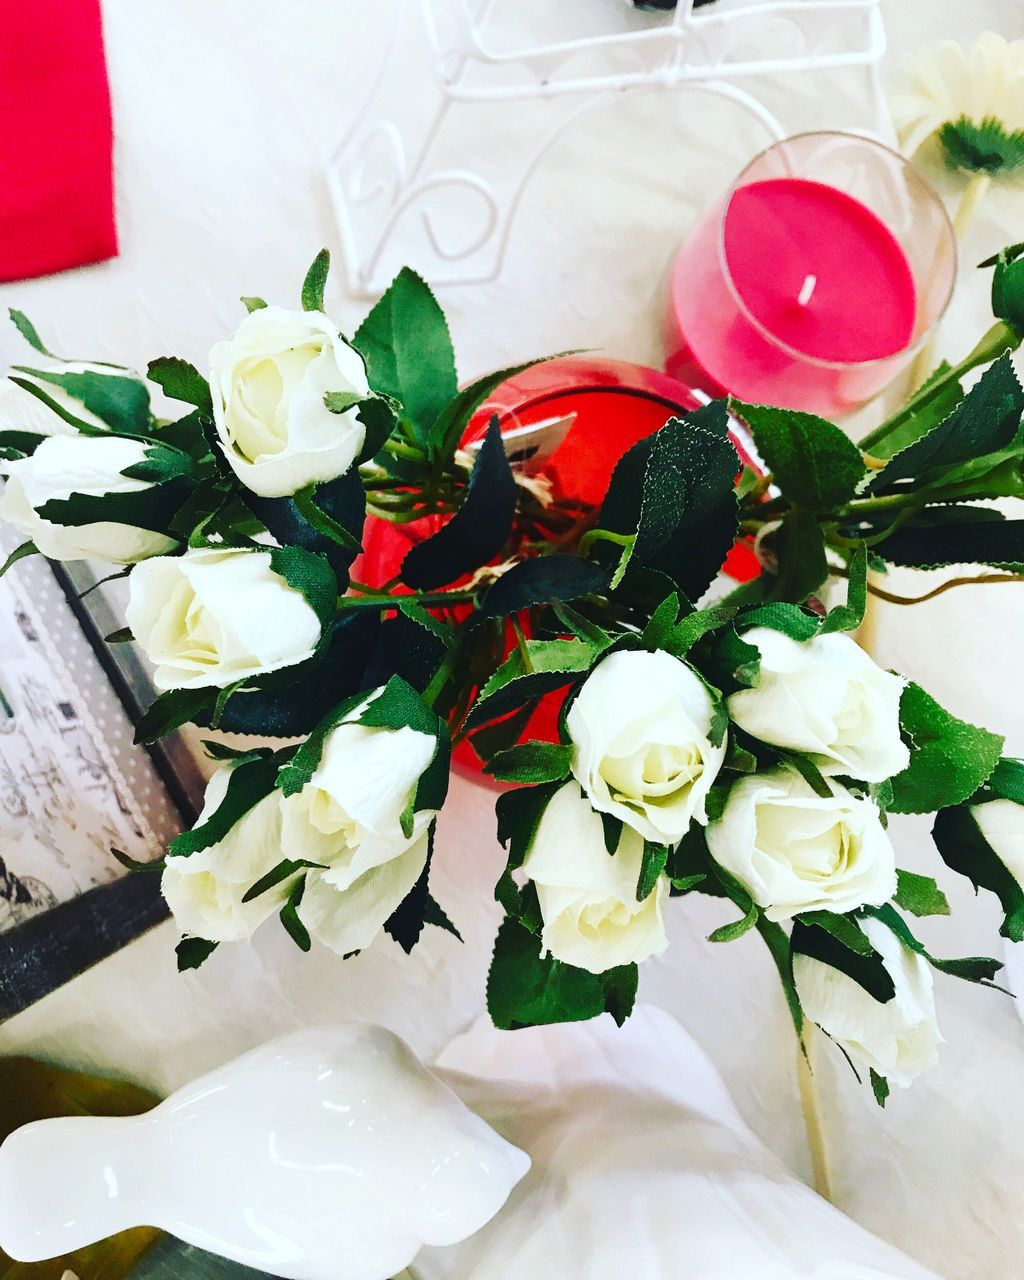 indoors, flower, celebration, rose - flower, still life, no people, white color, high angle view, table, bouquet, close-up, freshness, wedding, leaf, food, ready-to-eat, day